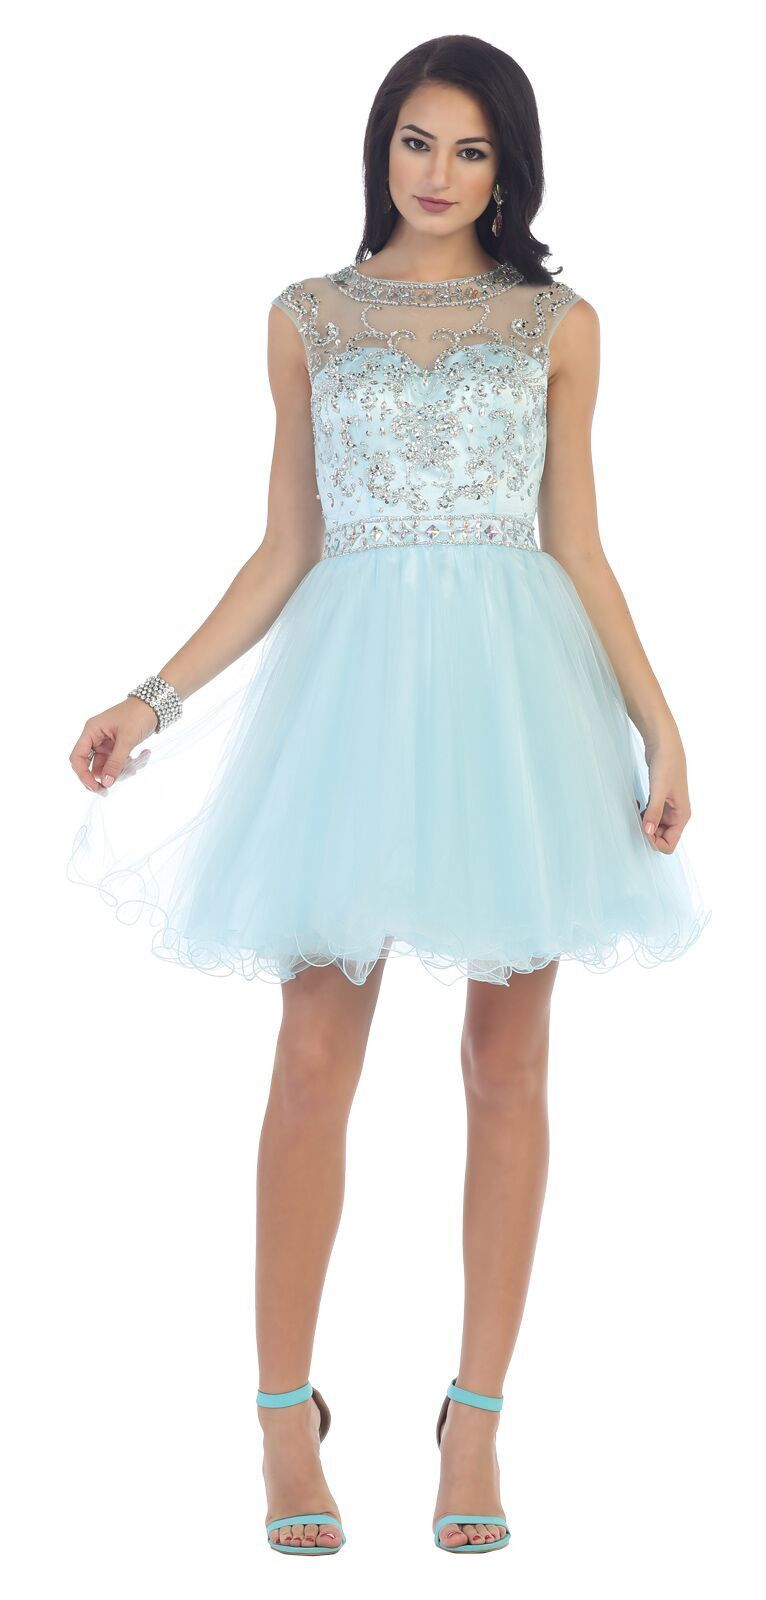 Short formal prom homecoming dress formal prom homecoming